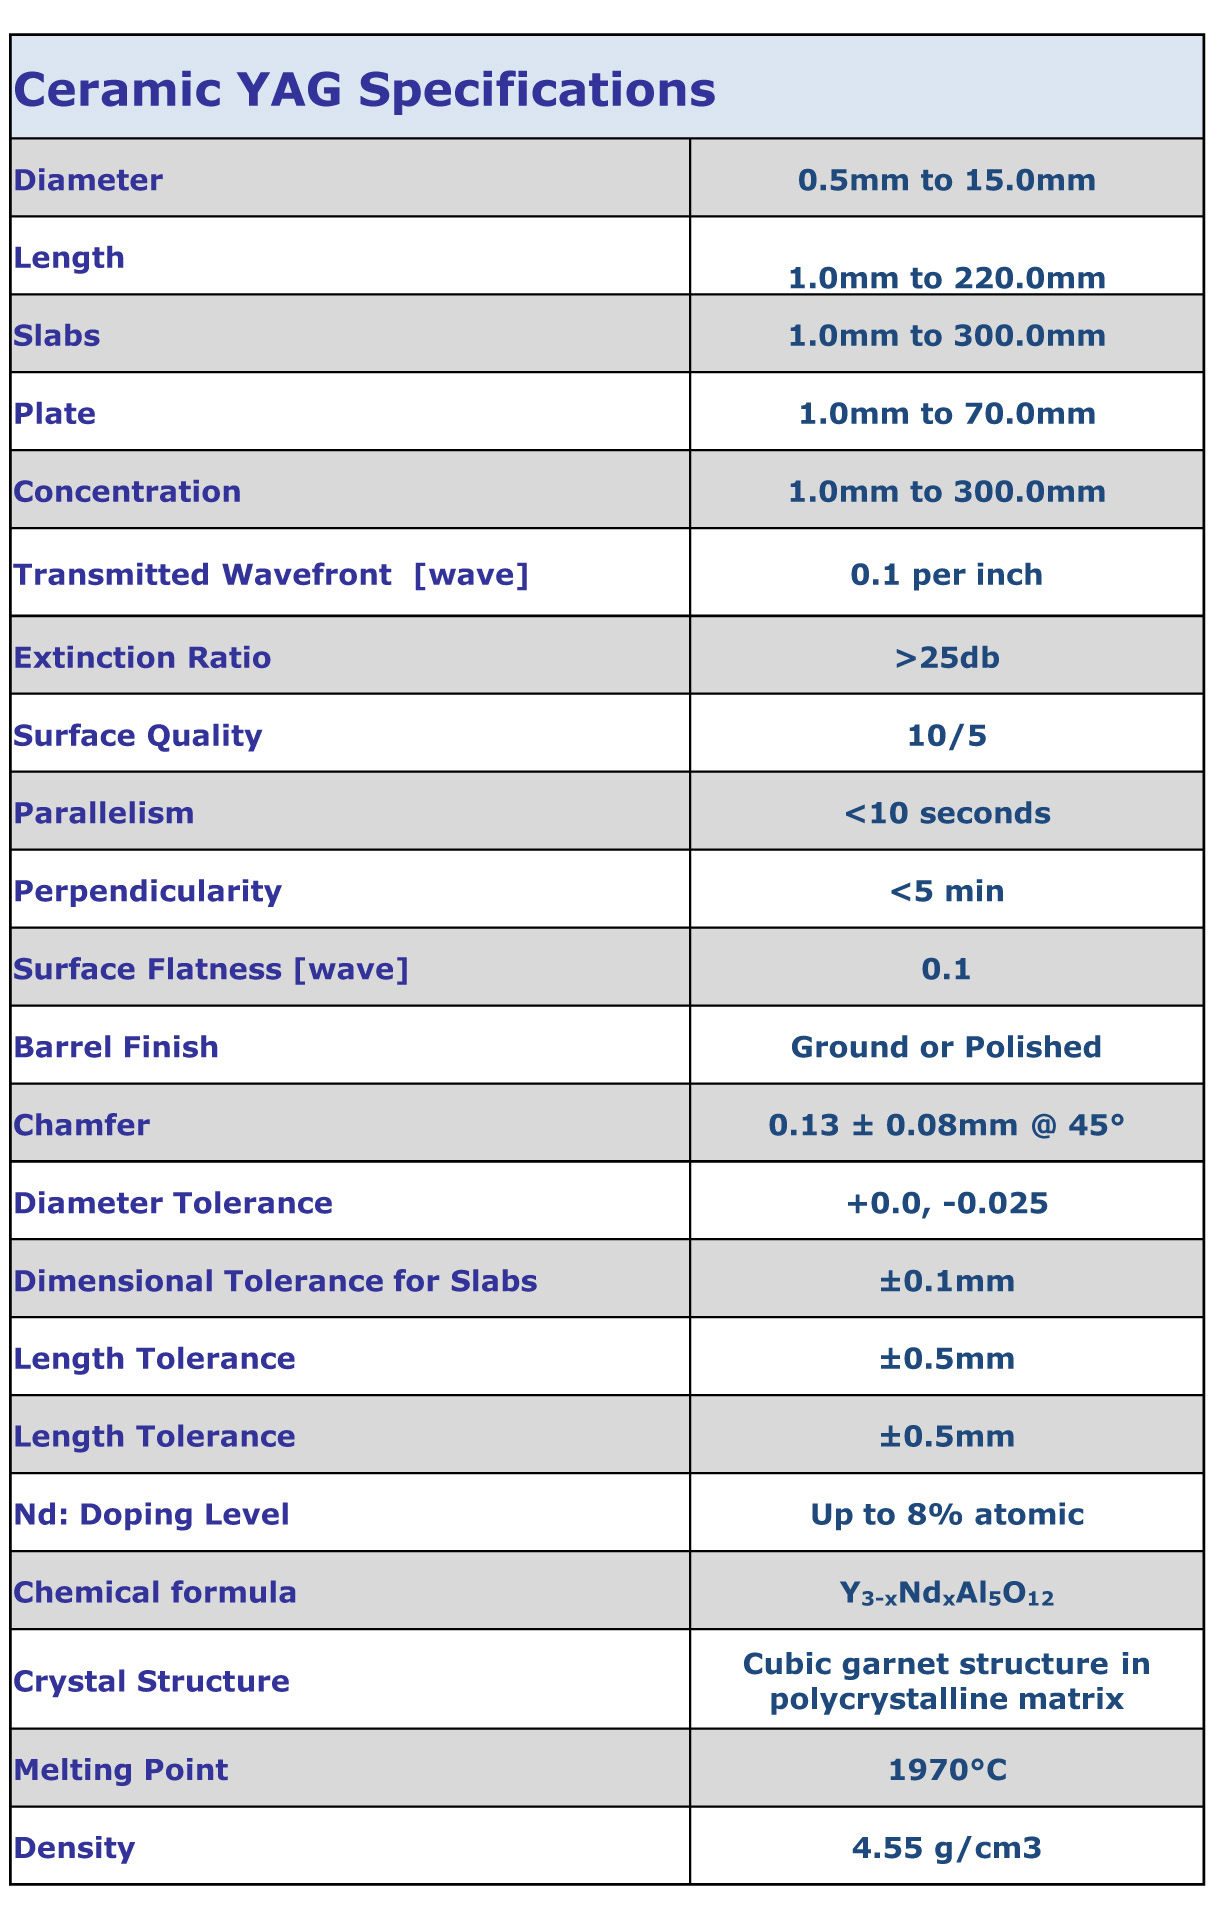 Ceramic YAG Specifications